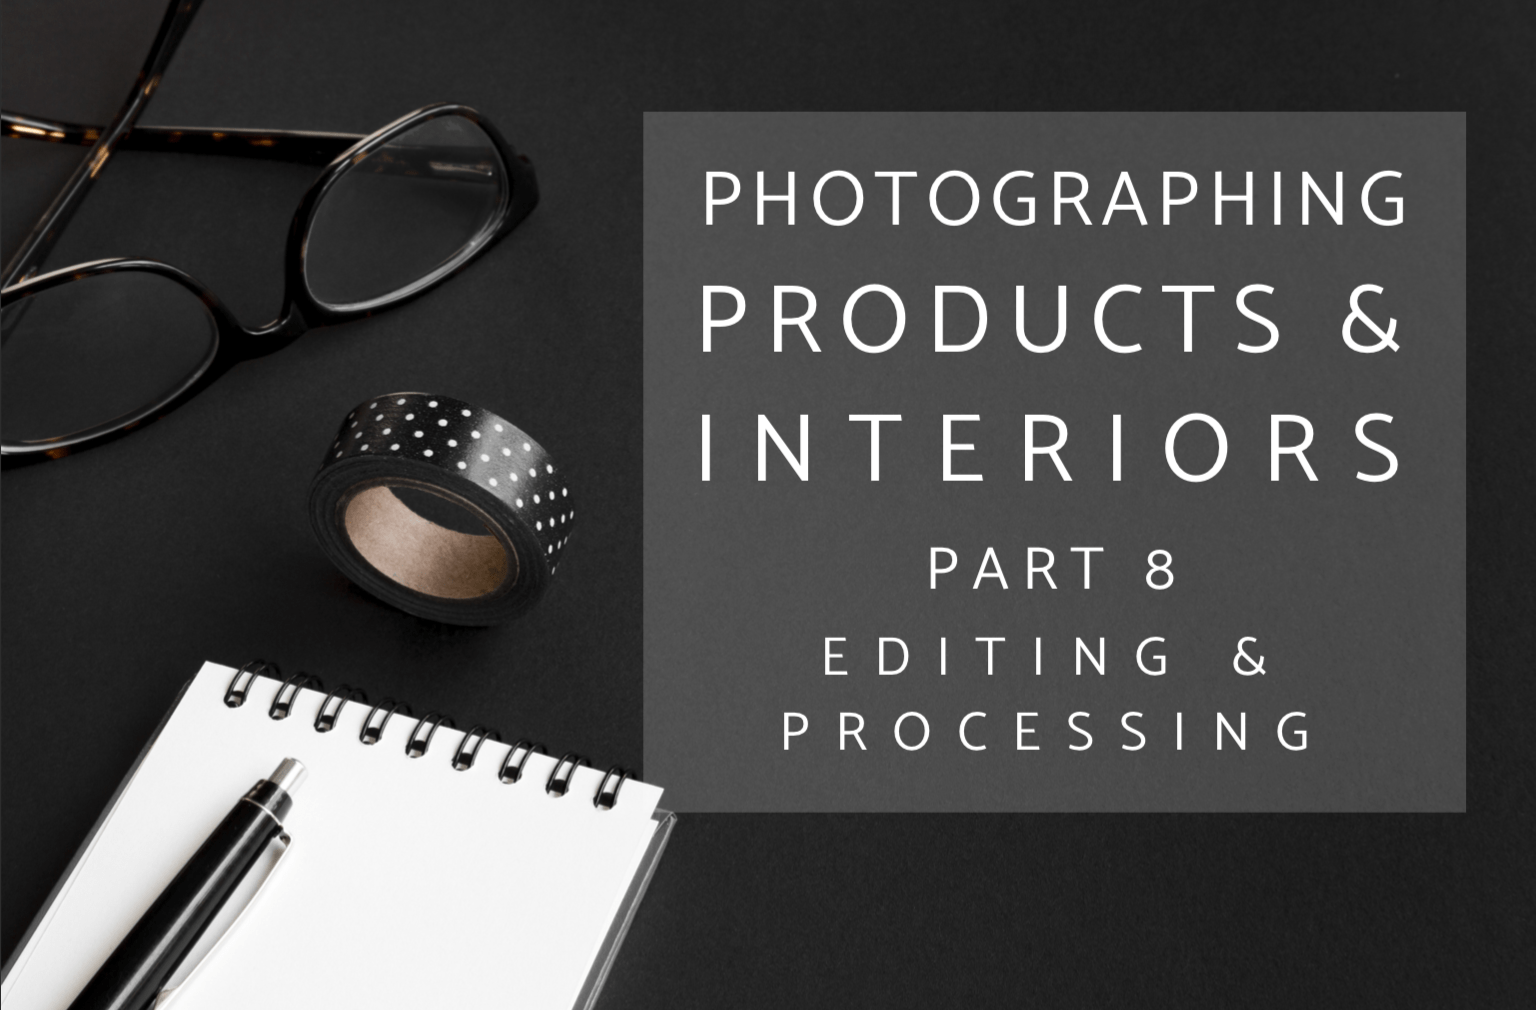 This is part 8 of my Photographing Interiors and Products series and focuses on editing and processing photos in Lightroom. #interiorphotography #productphotography #photography #blogphotography #photoediting #lightroom #lightroomworkflow